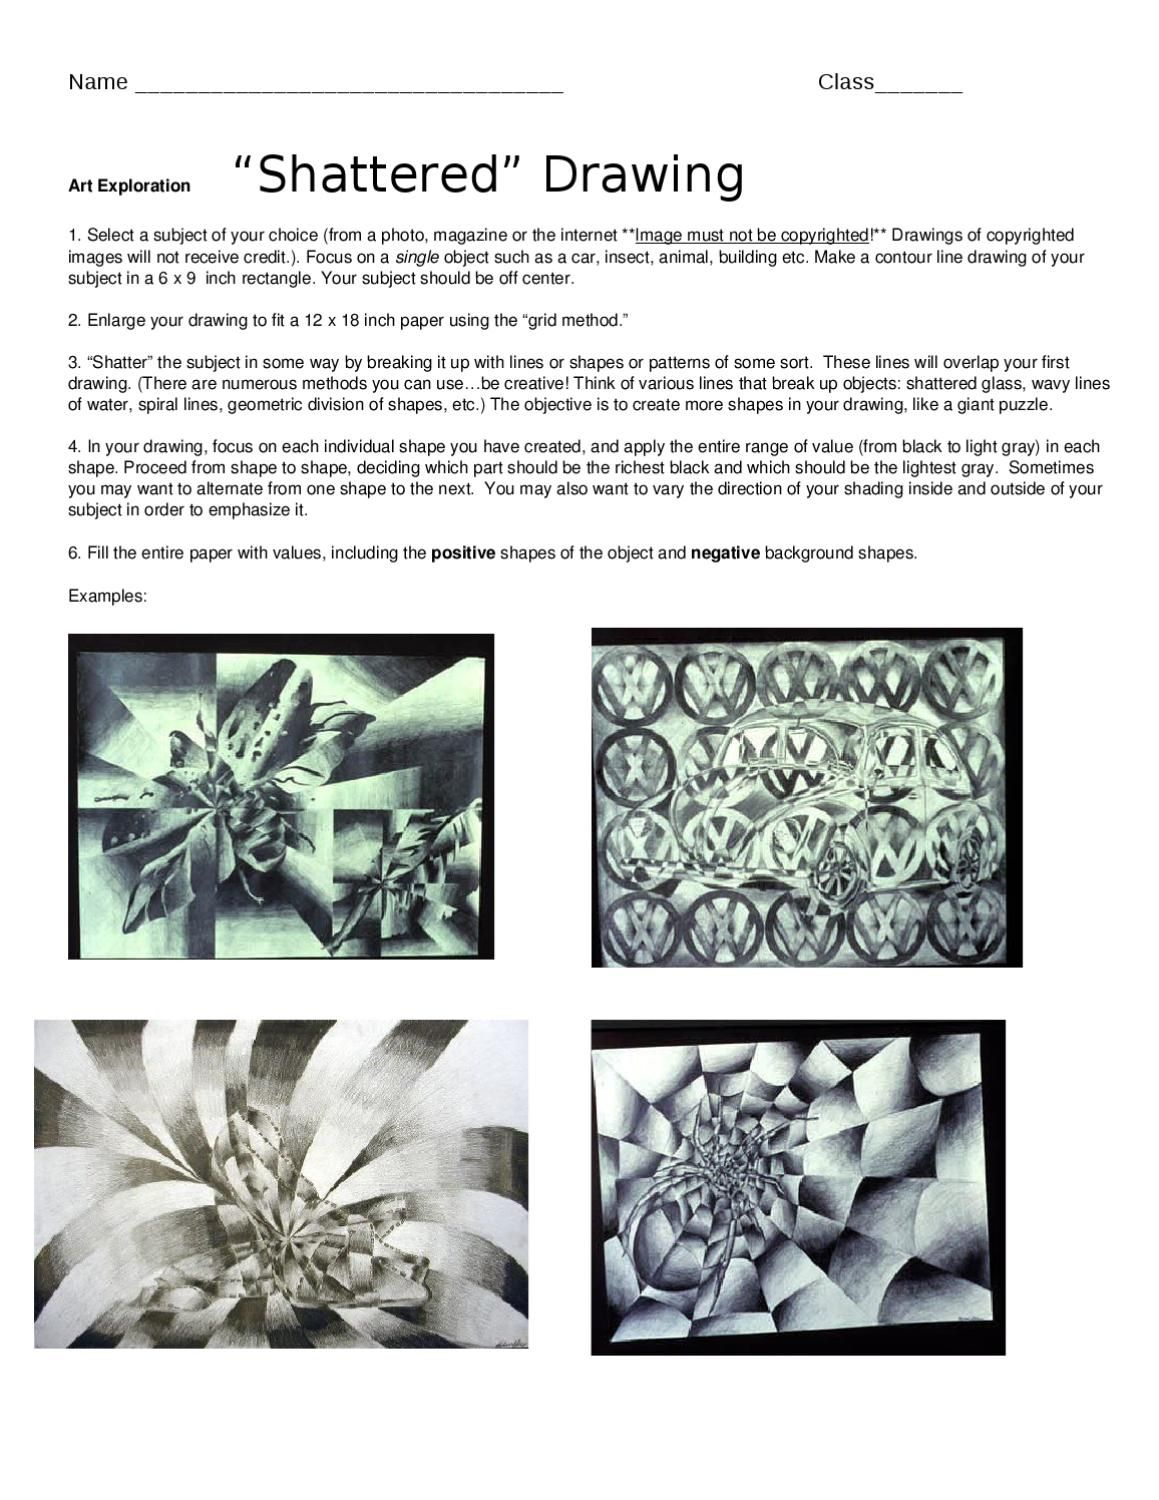 Shattered Drawing Handout In